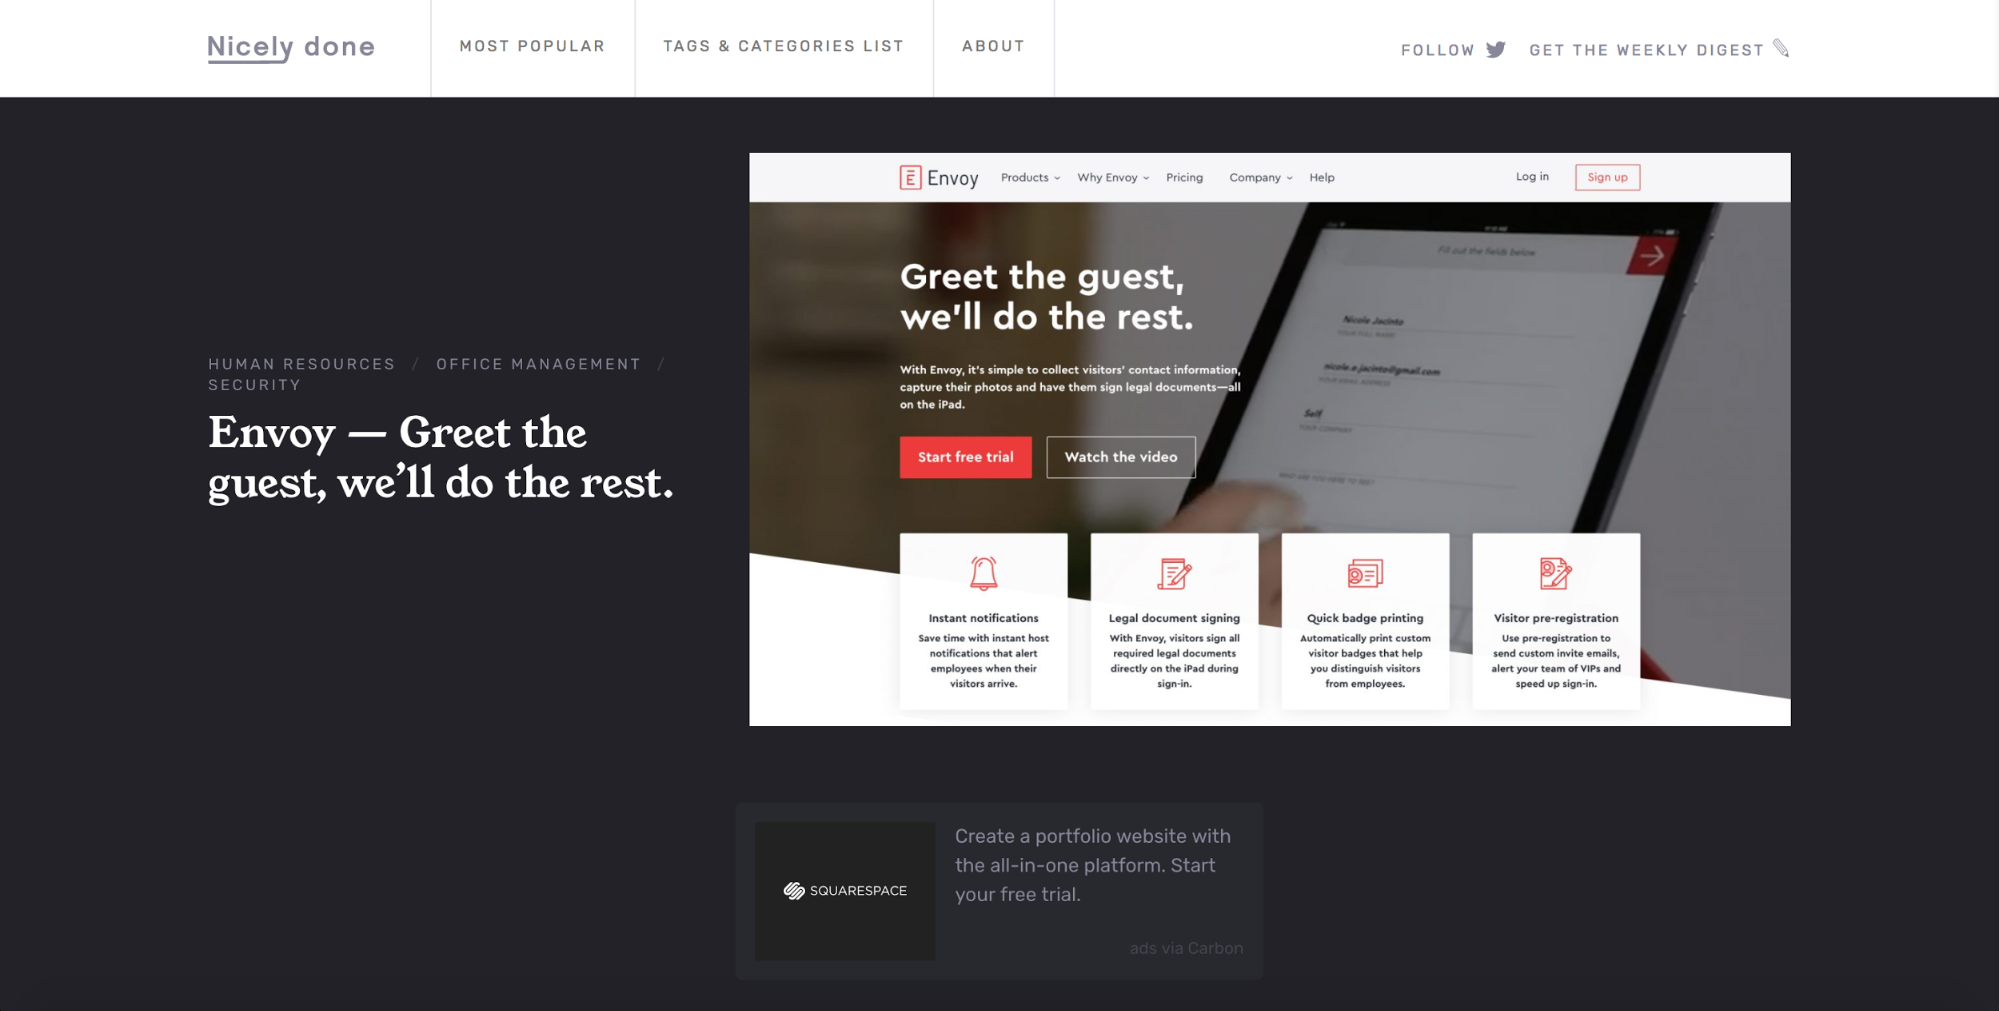 Nicely done web design inspiration site